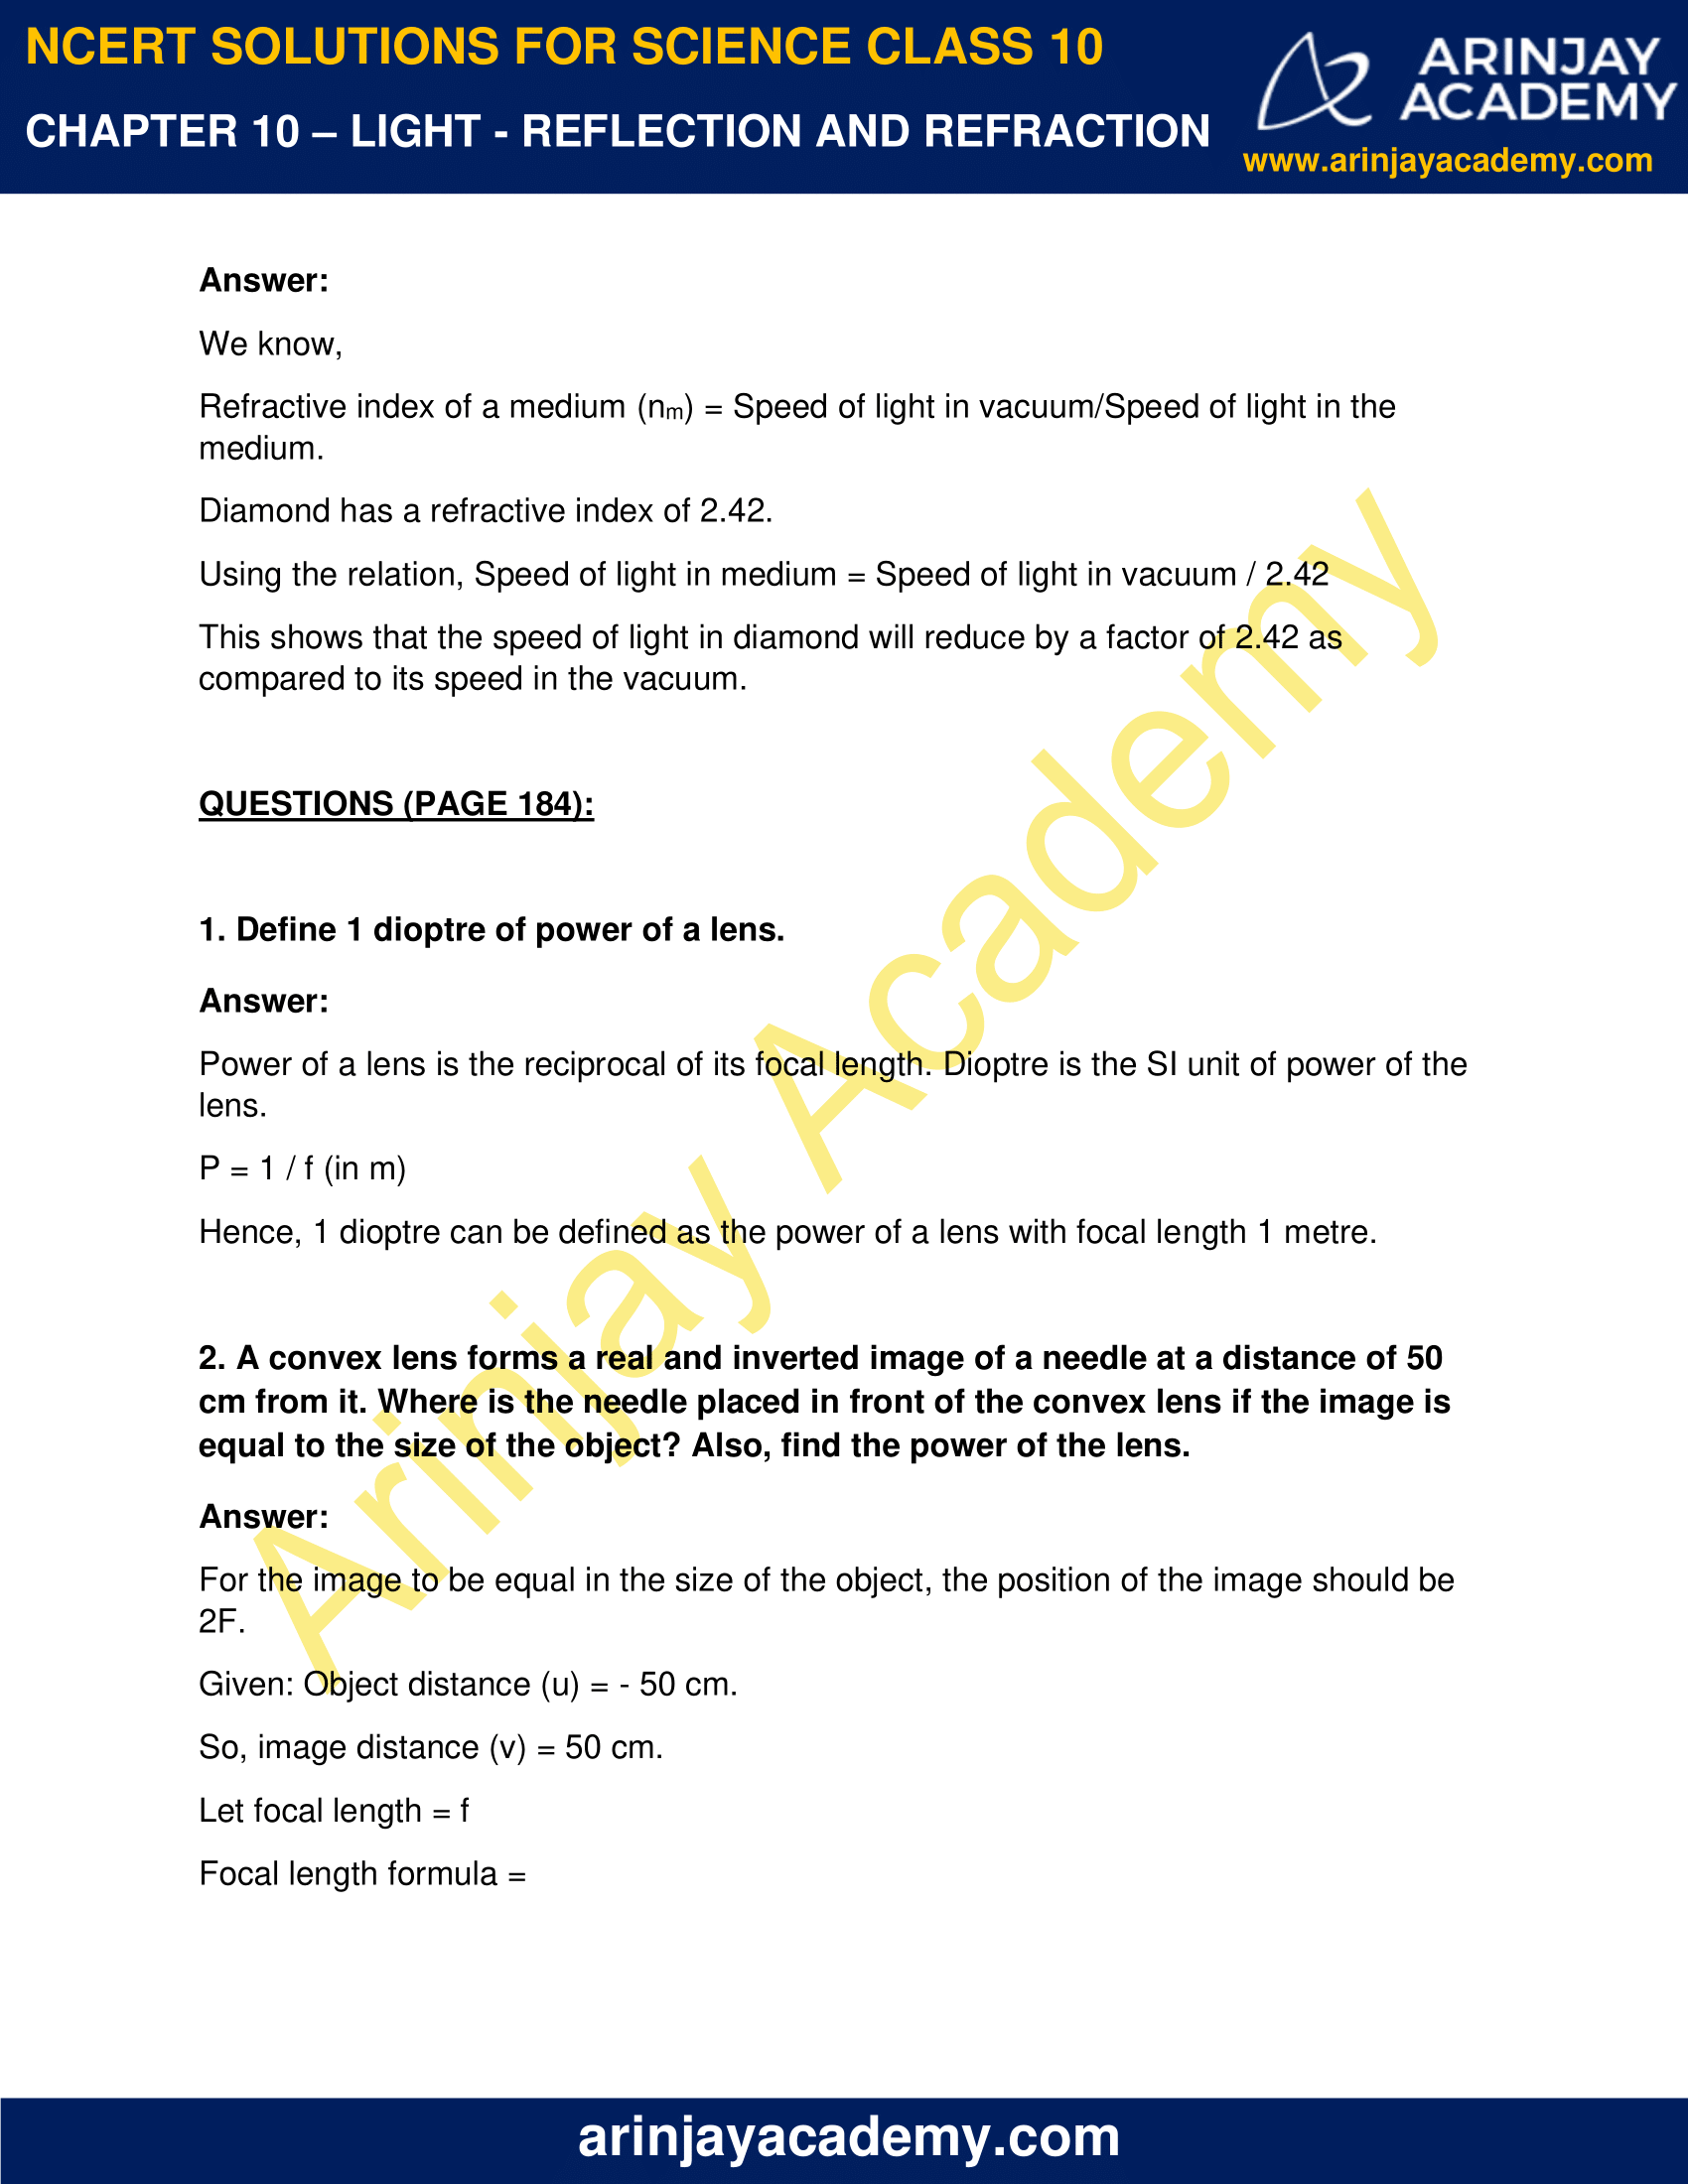 NCERT Solutions for Class 10 Science Chapter 10 image 5